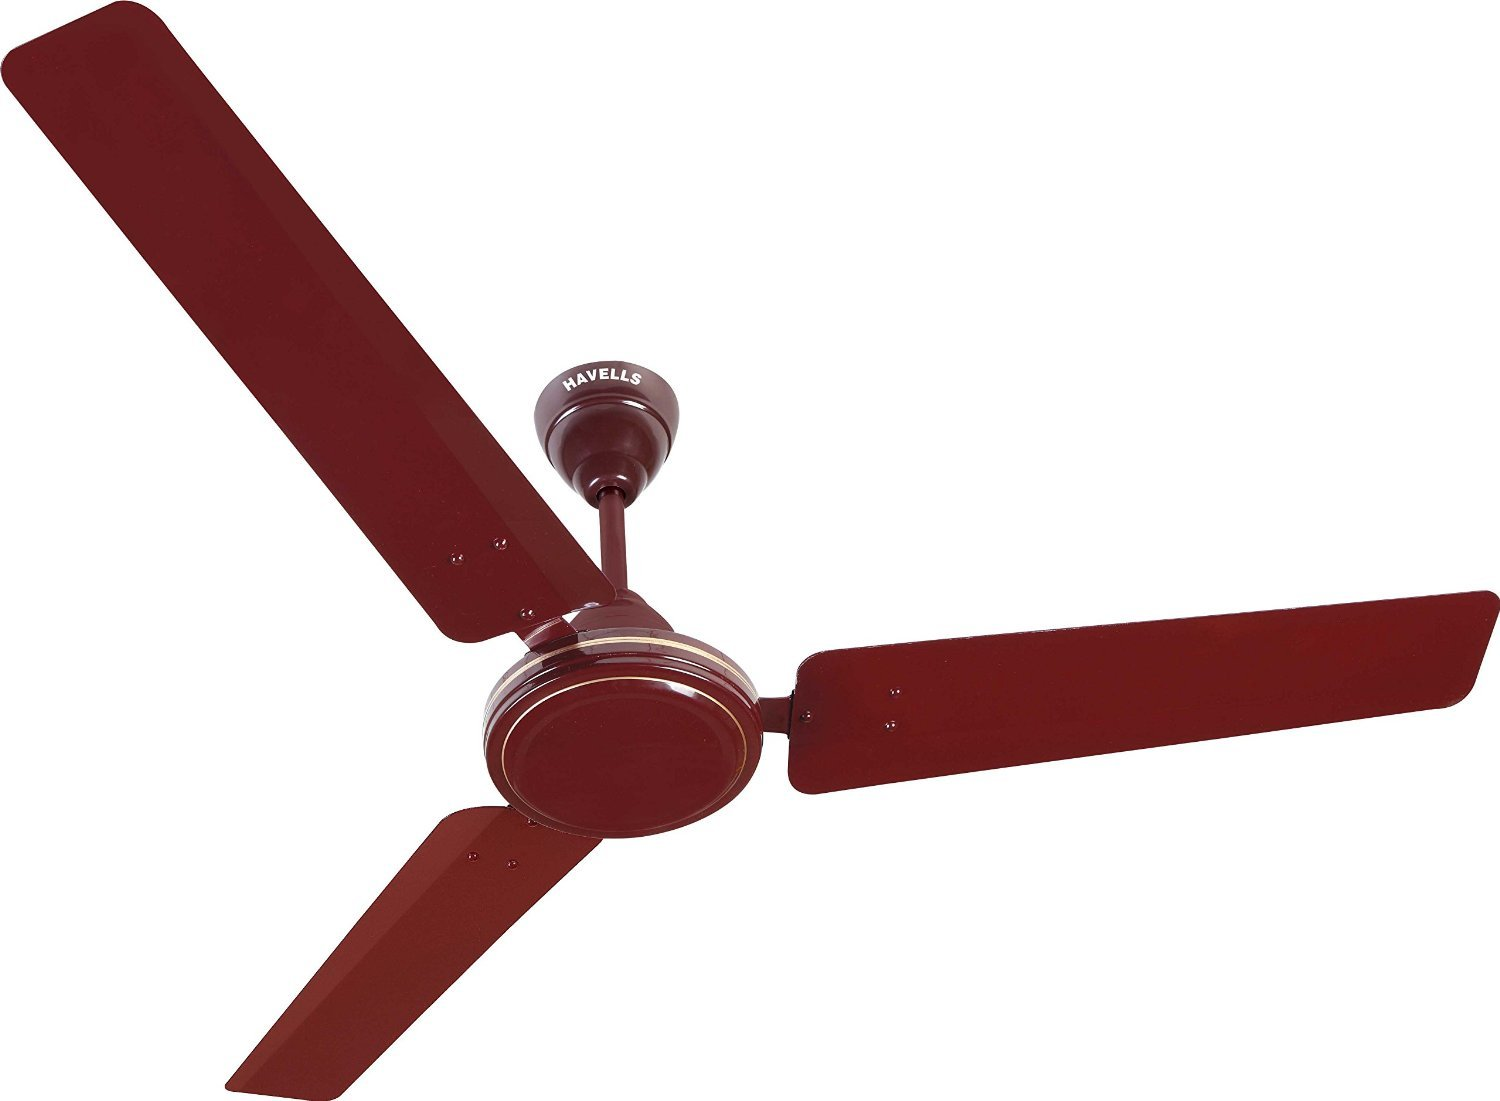 Havells Xp 390 1200mm Ceiling Fan Brown At Low S In India